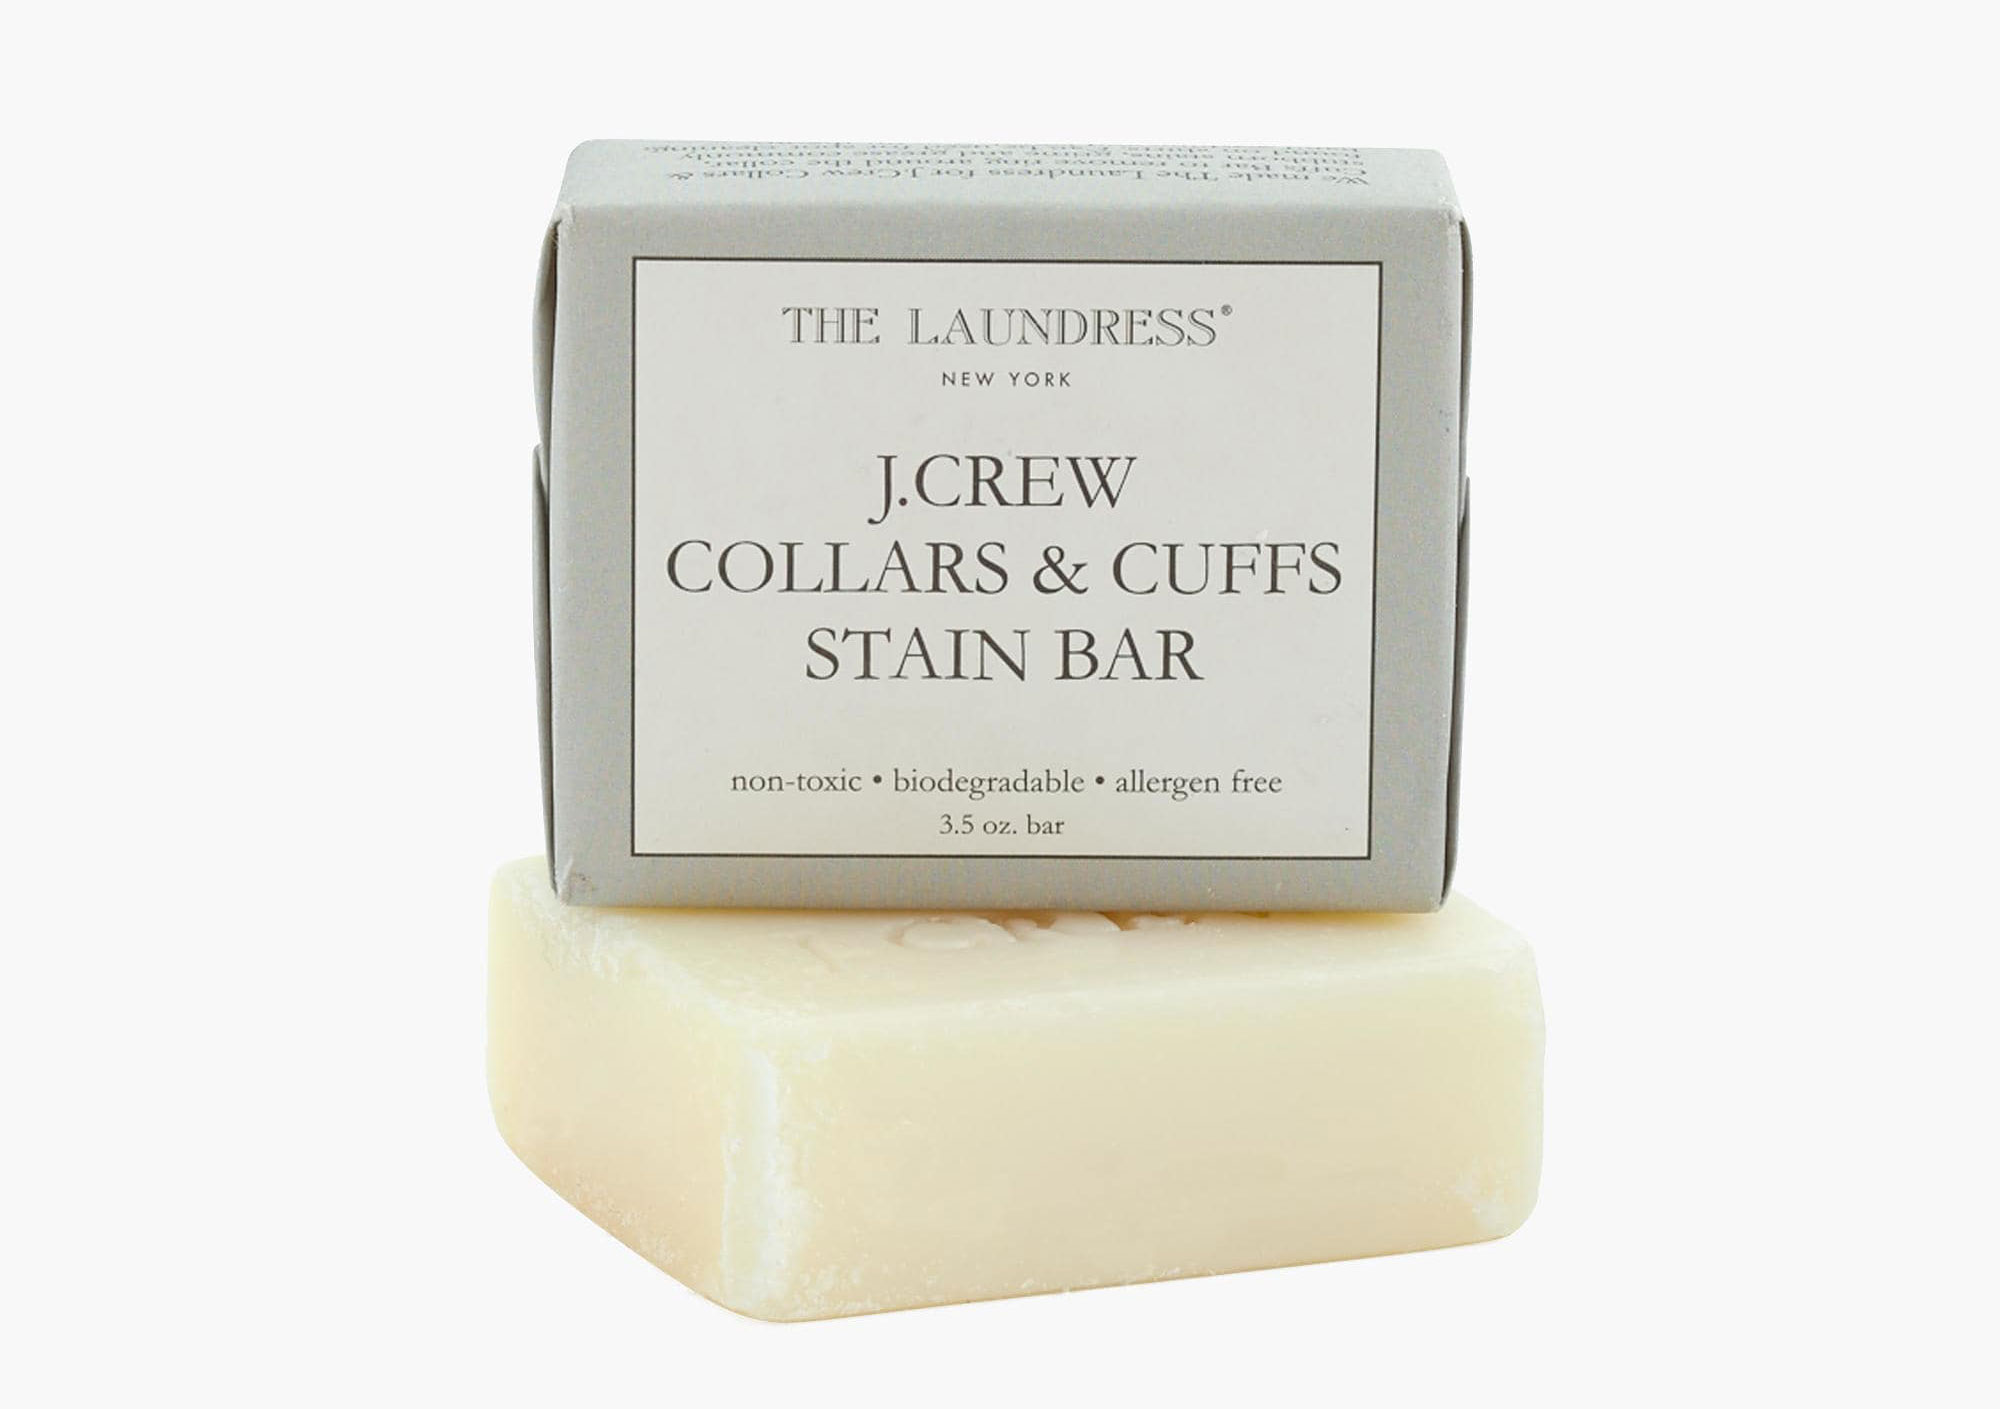 J.Crew Collars & Cuffs Stain Bar